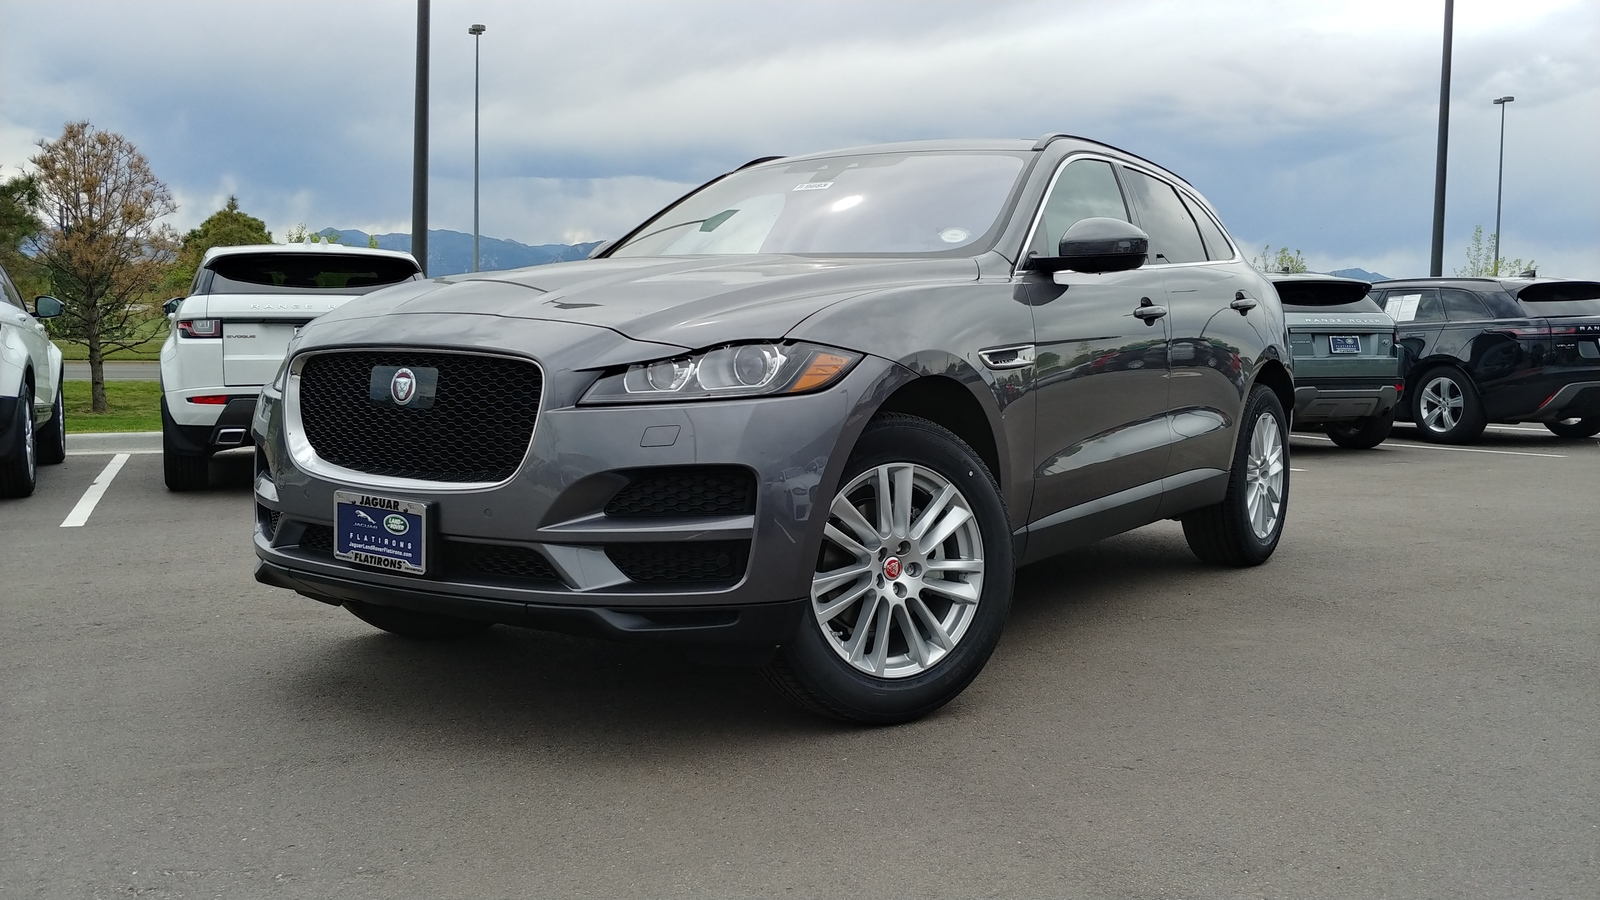 Jaguar F-PACE SUV Tailored Indoor Car Cover 2016 Onwards